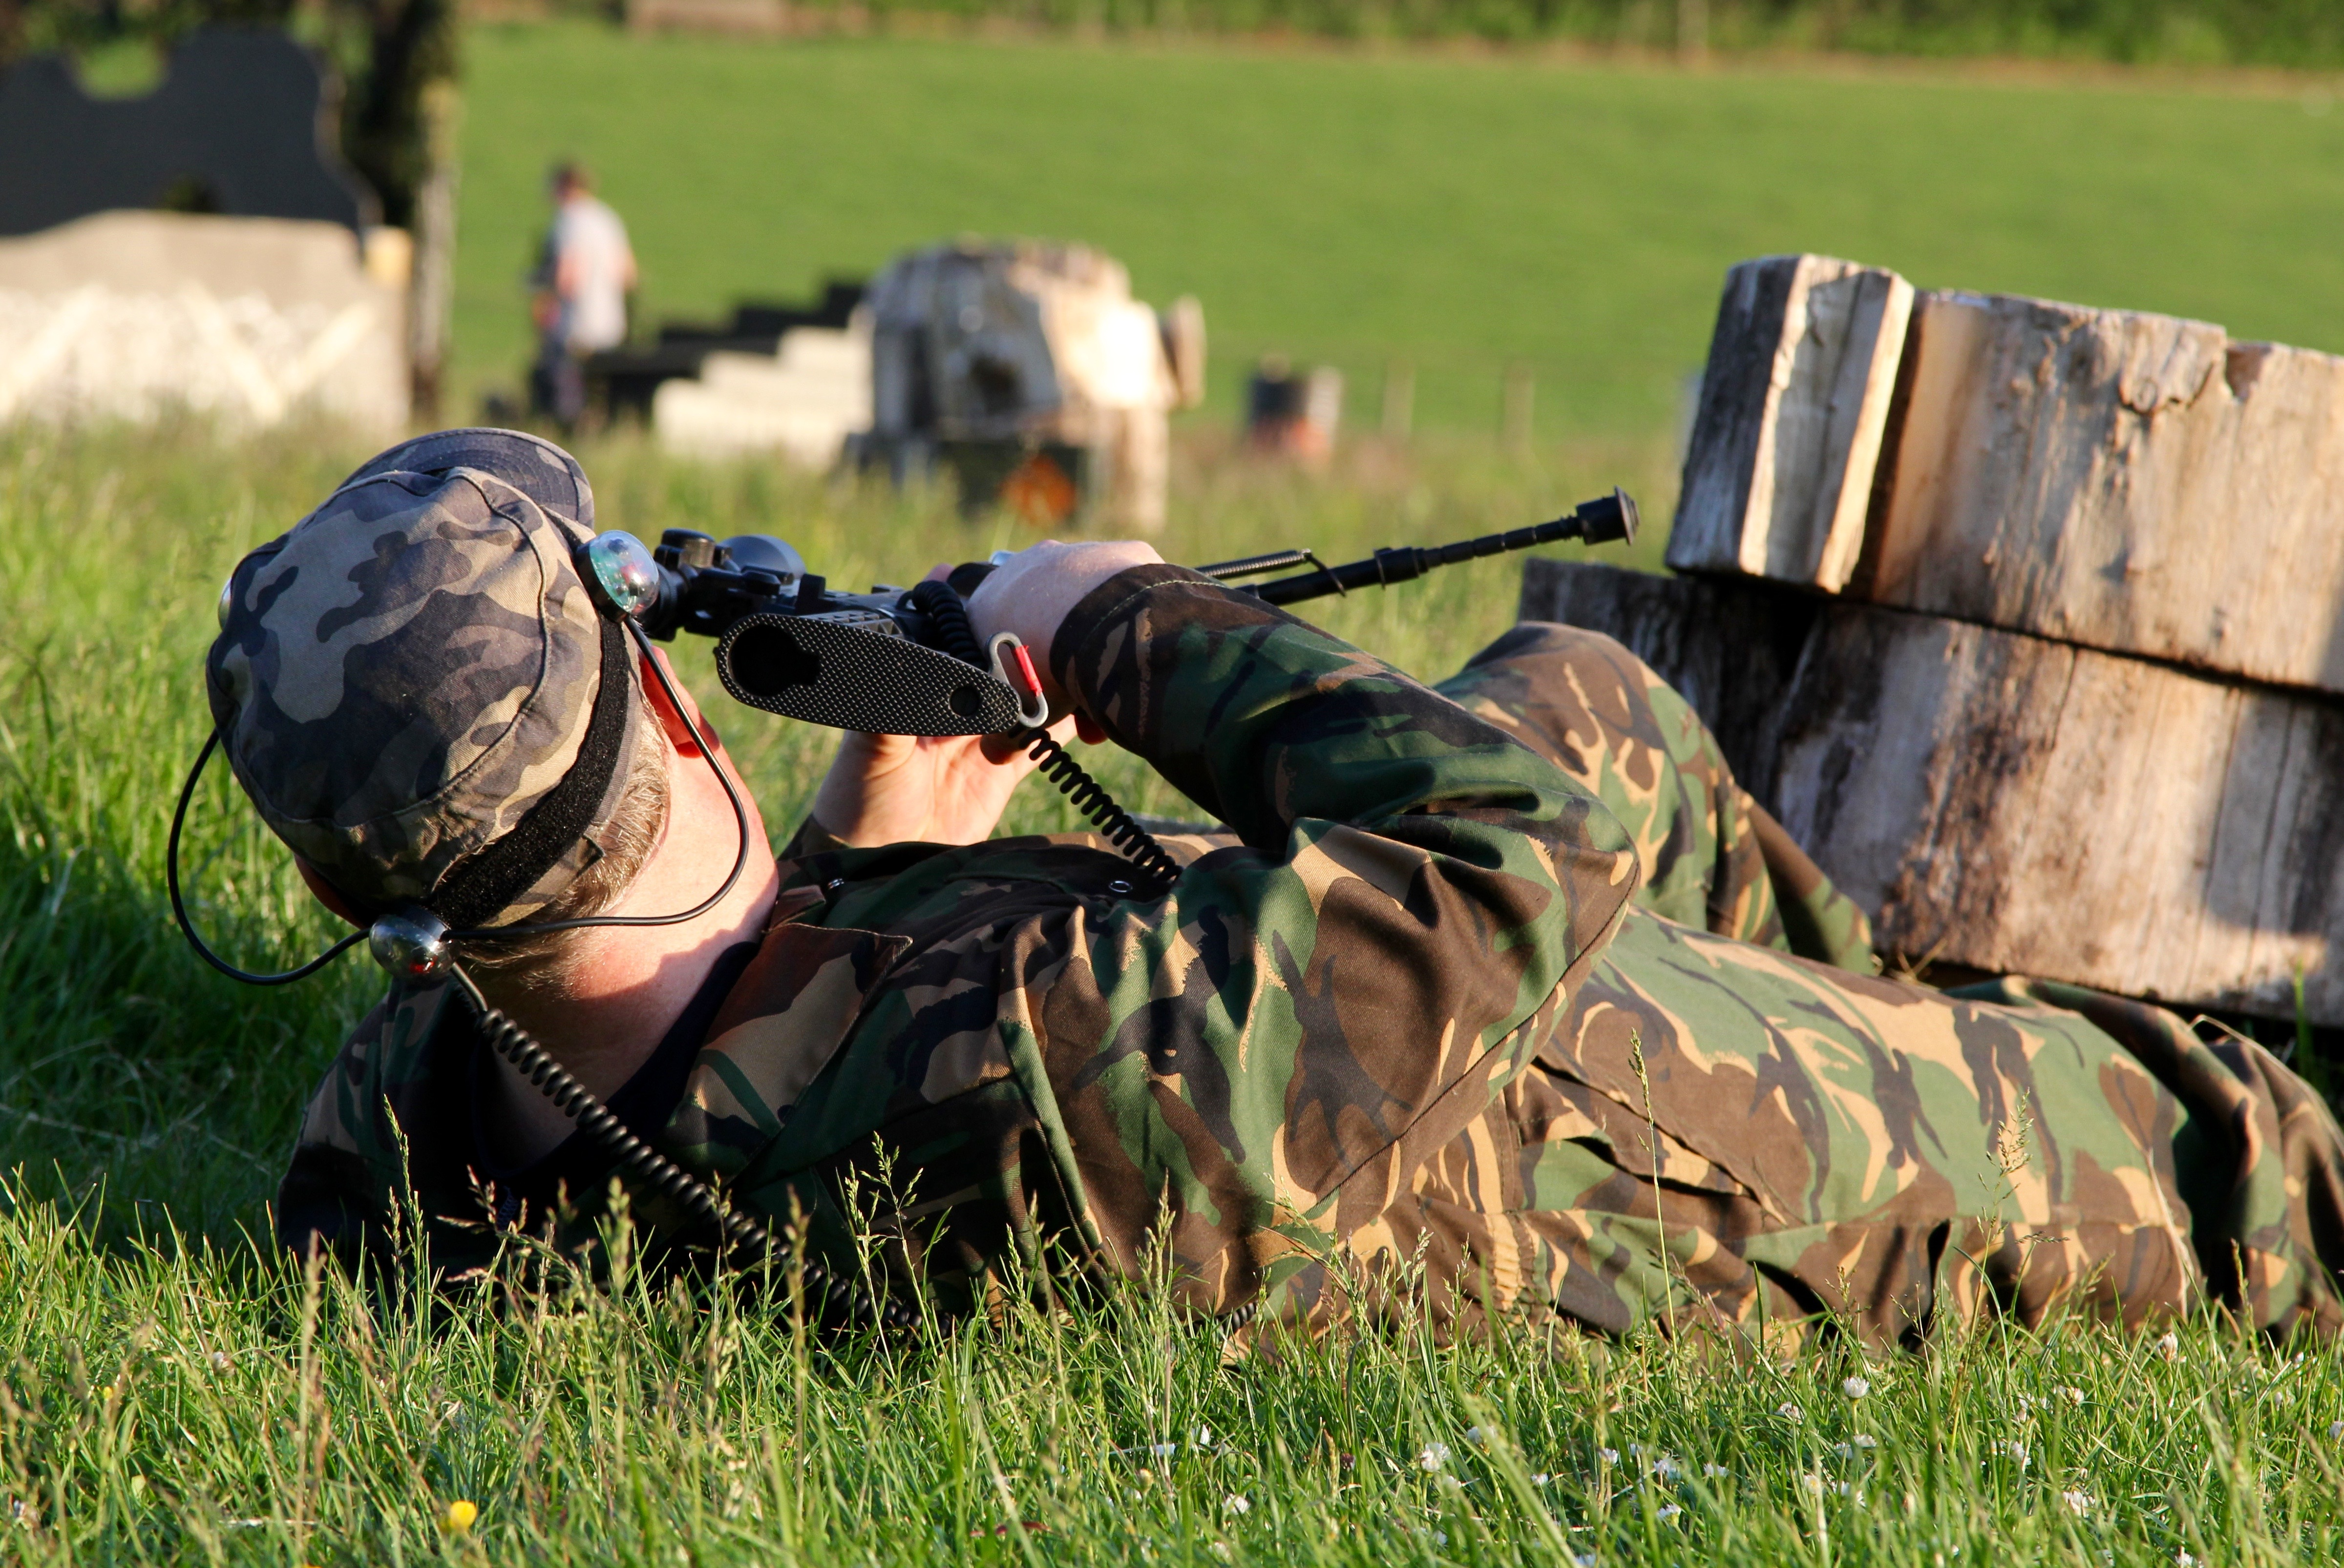 player-getting-ready-to-fire-during-laser-combat-game